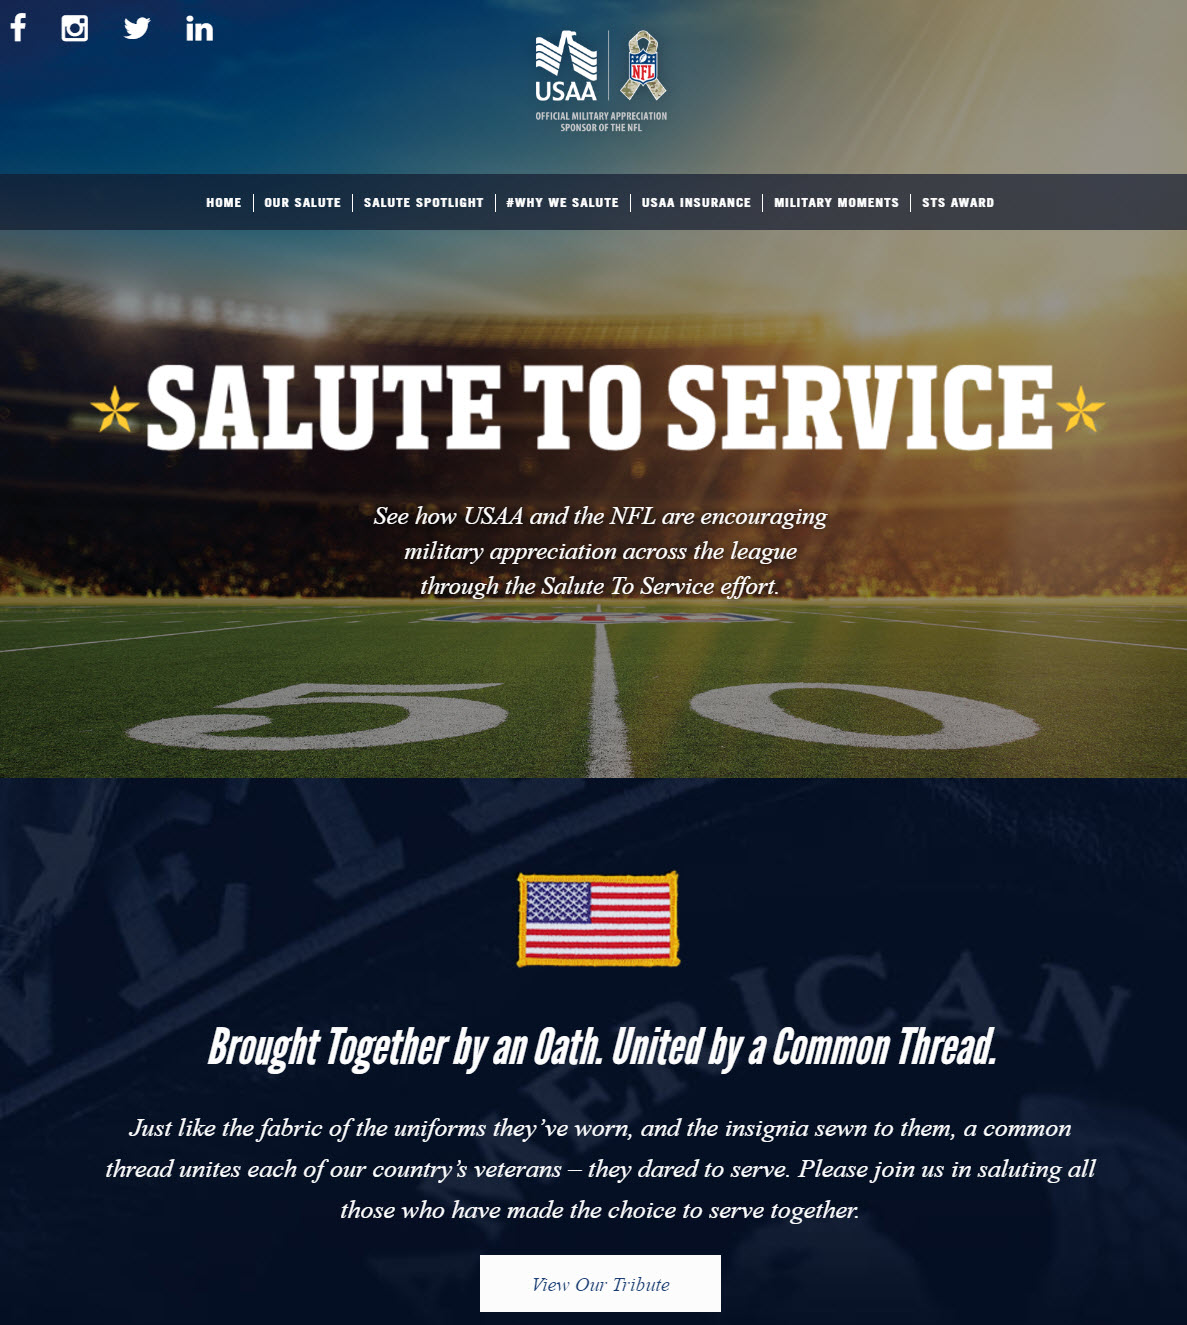 usaa-nfl-salute-to-service-tribute